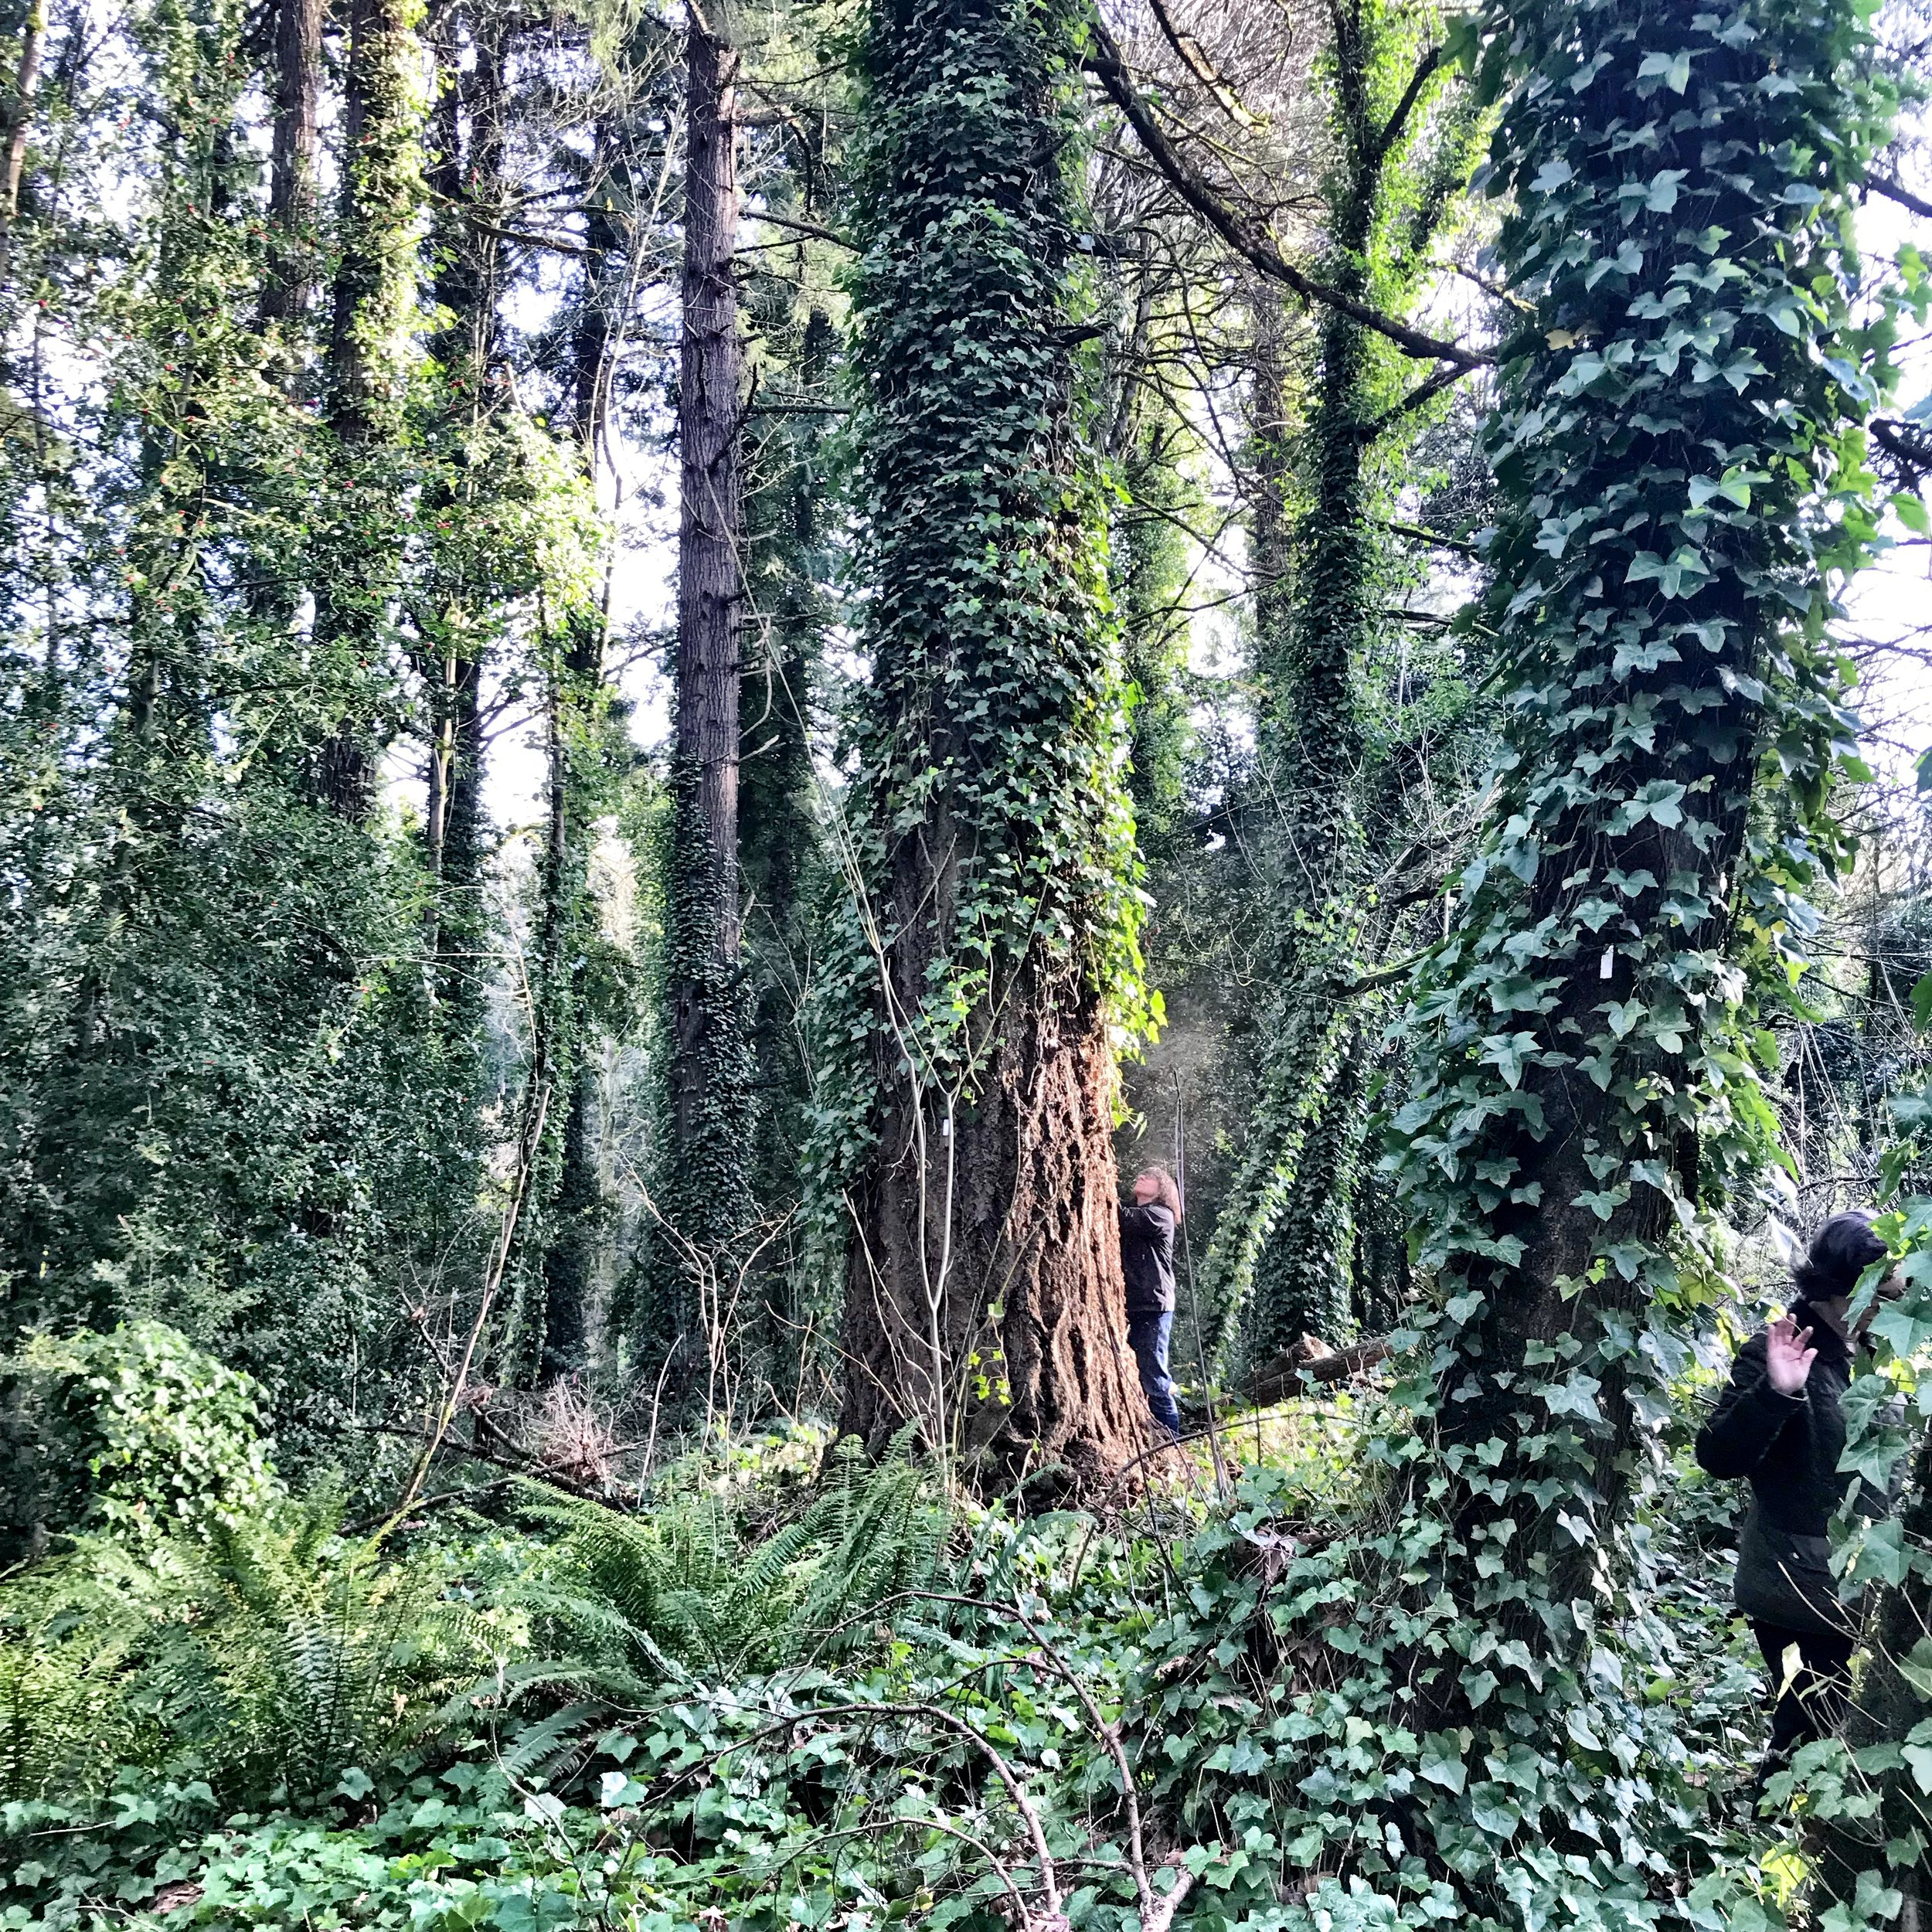 """54"""" Douglas Fir Tree in Upland Forest Area slated for clear-cut"""